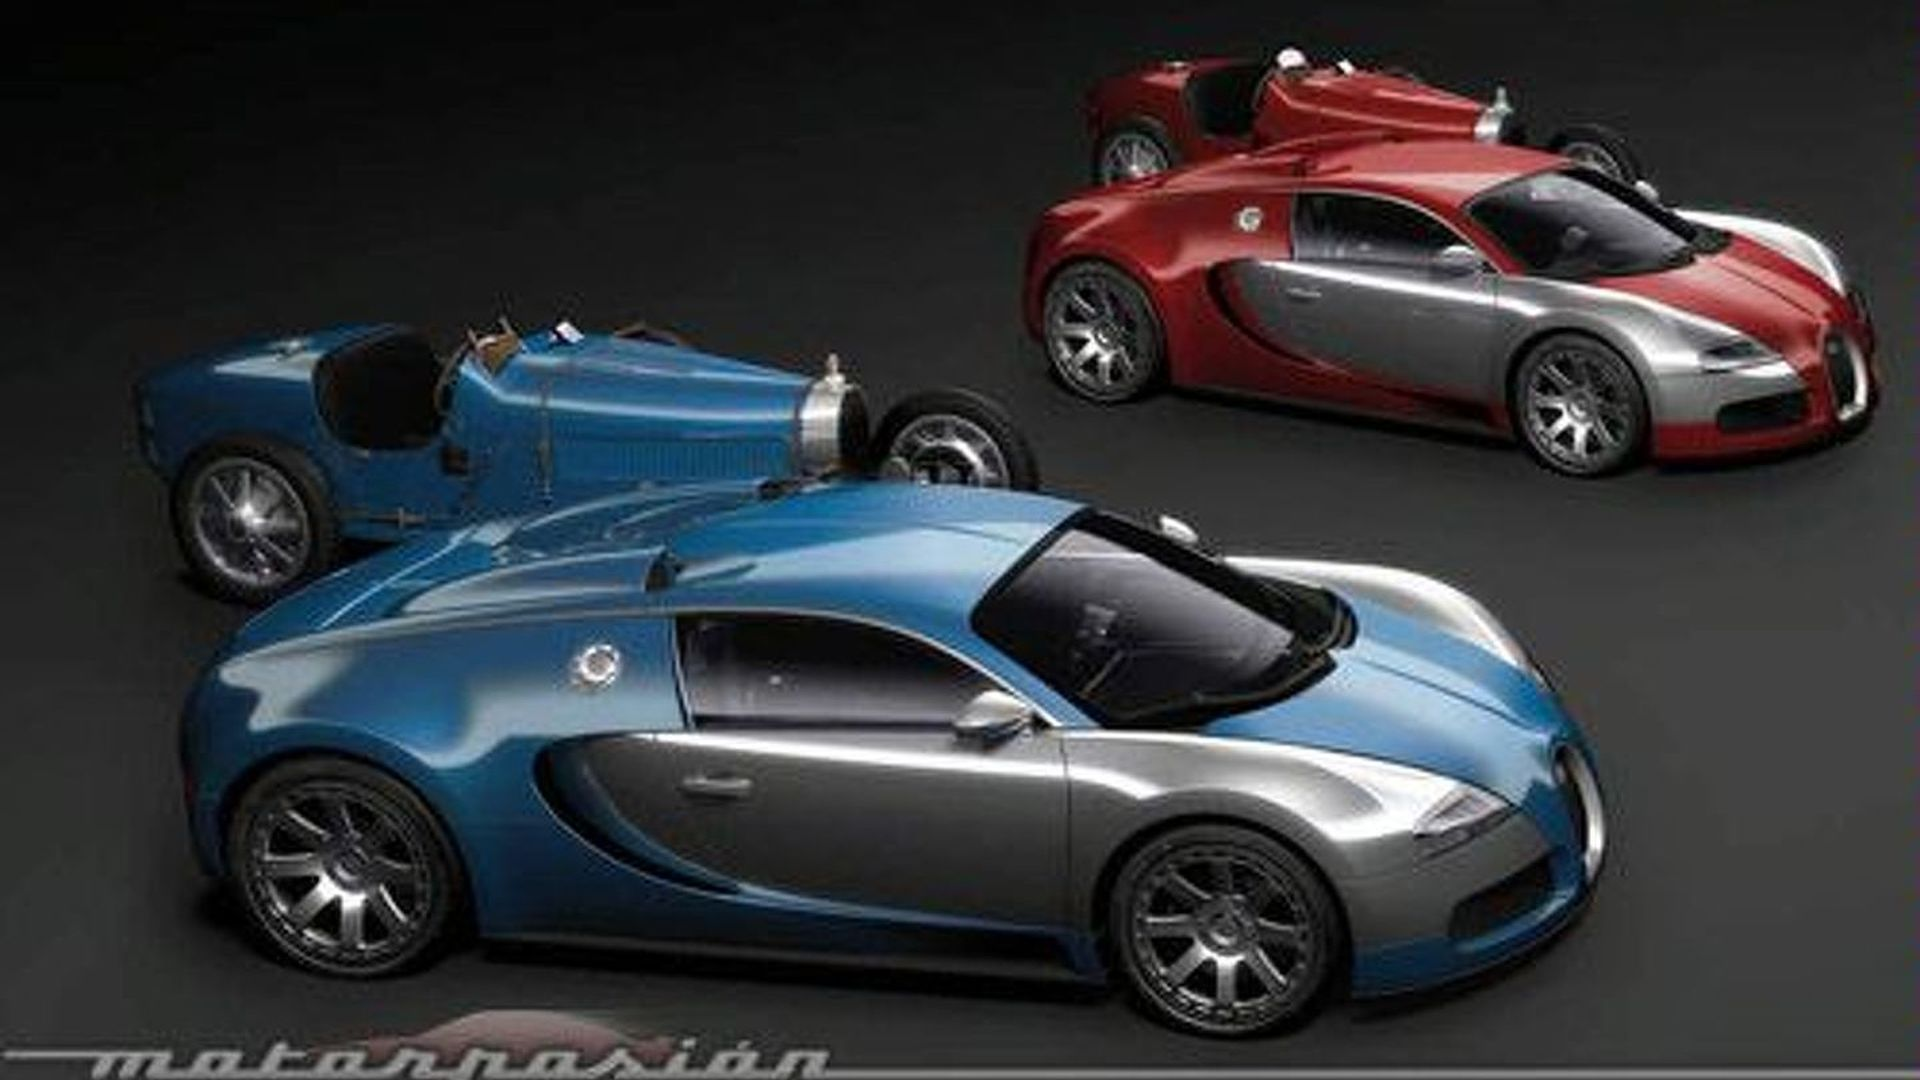 Bugatti centenaire images surface ahead of debut product 2009 04 22 19 11 26